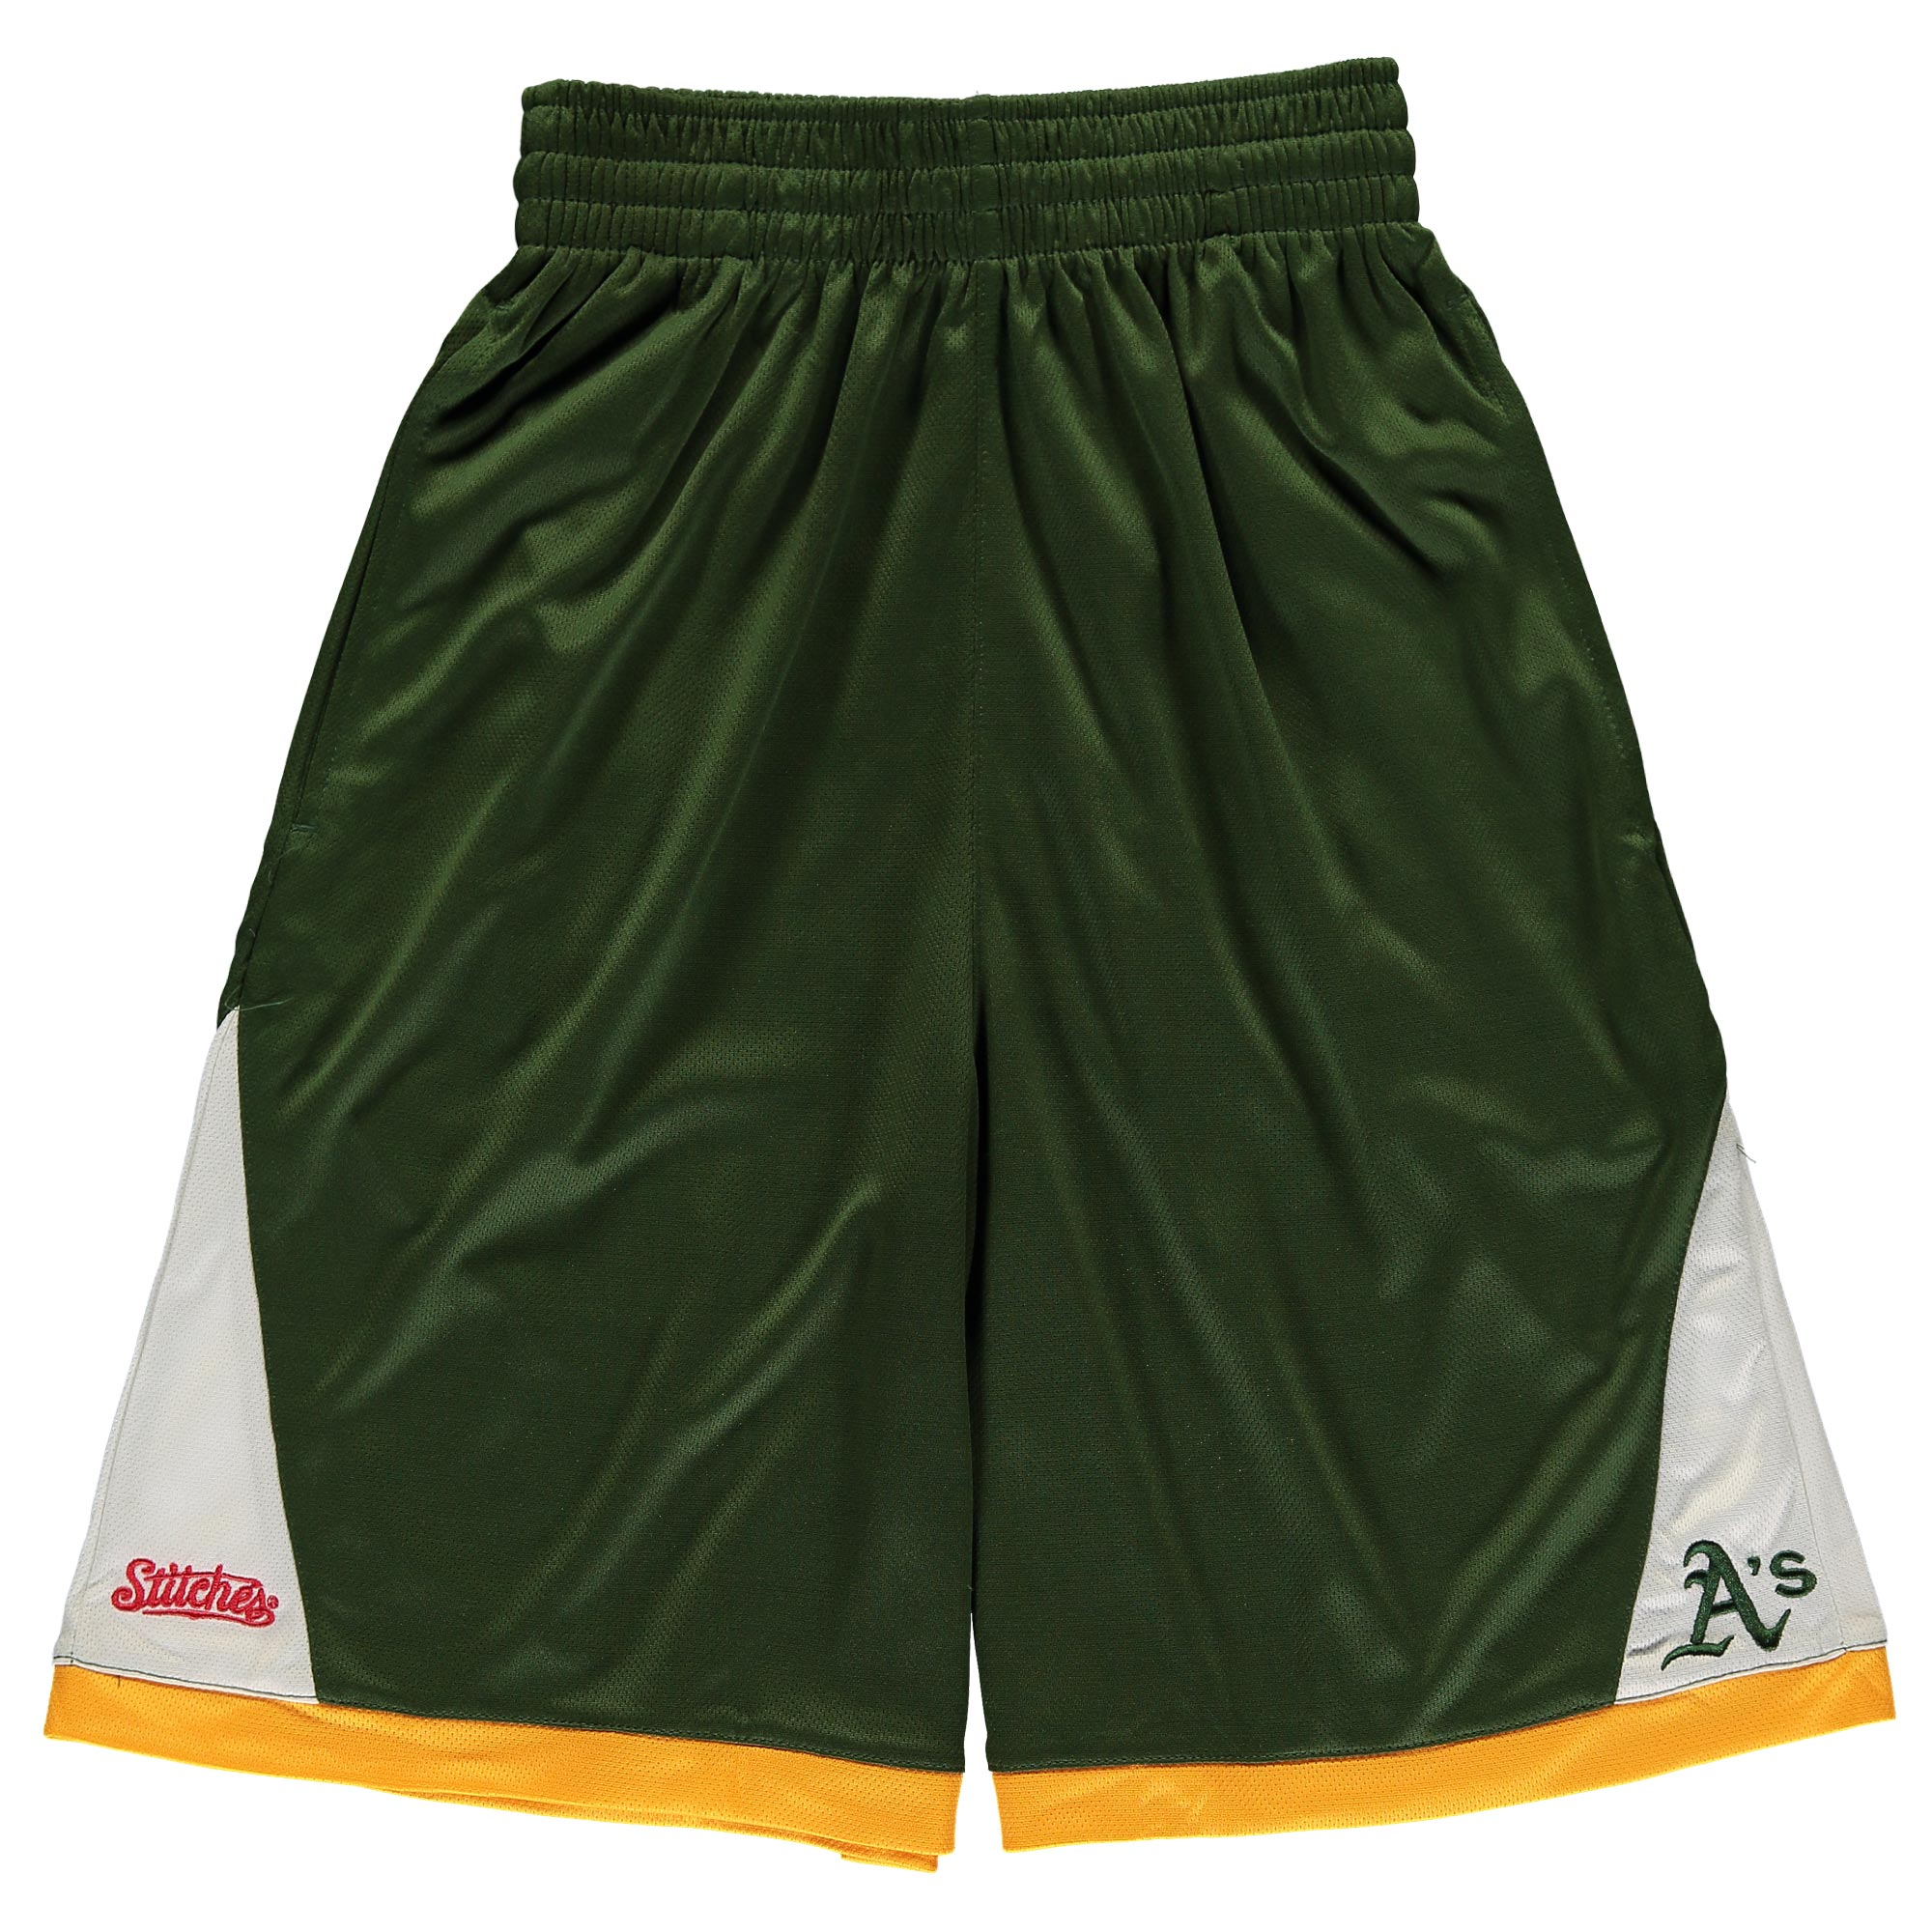 Oakland Athletics Stitches Youth Moneyball Shorts - Green